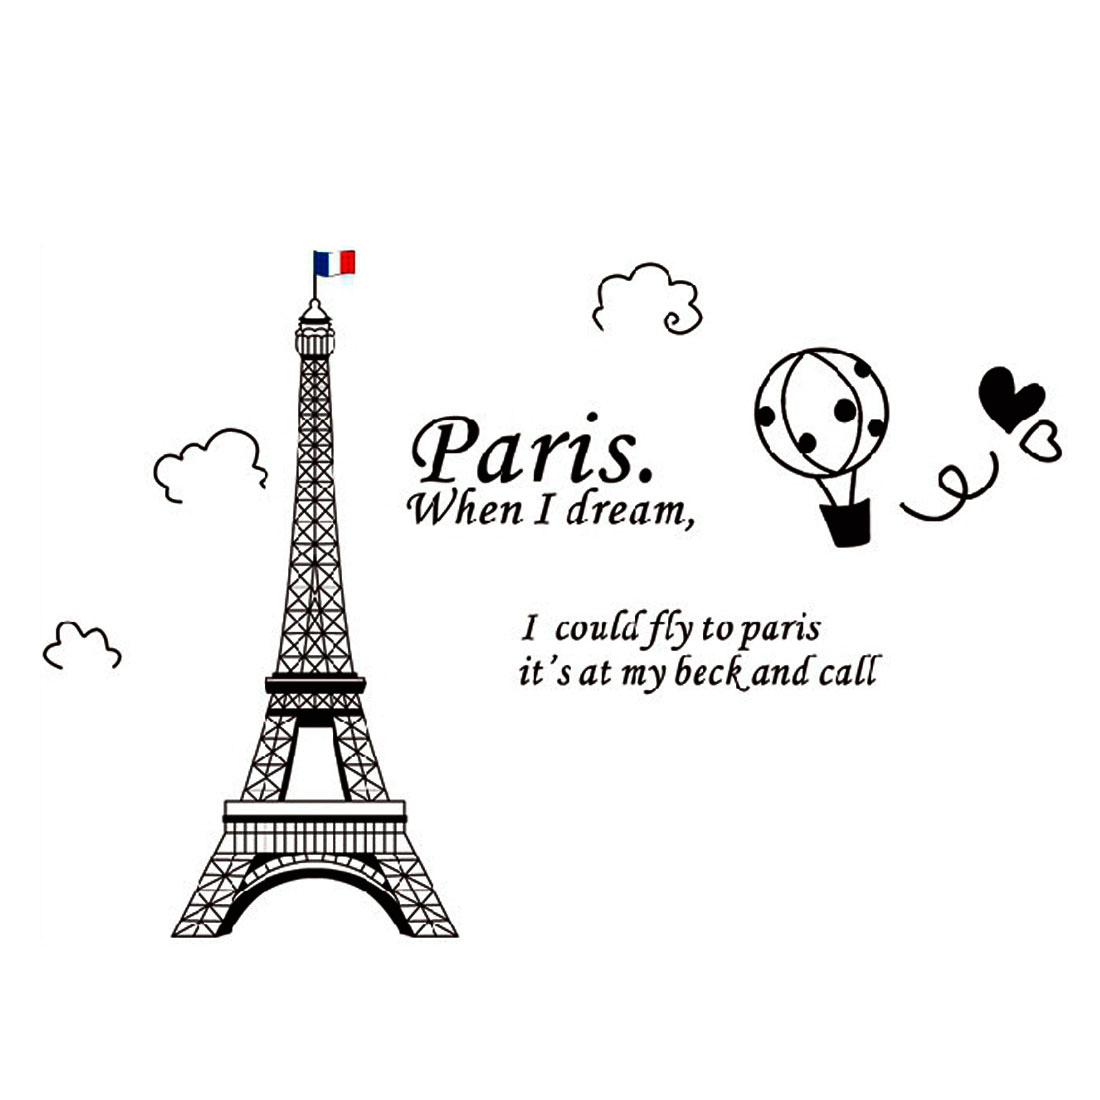 Home Decor Black DIY Removable PVC Pairs Eiffel Tower Wall Sticker Decal 60x90cm